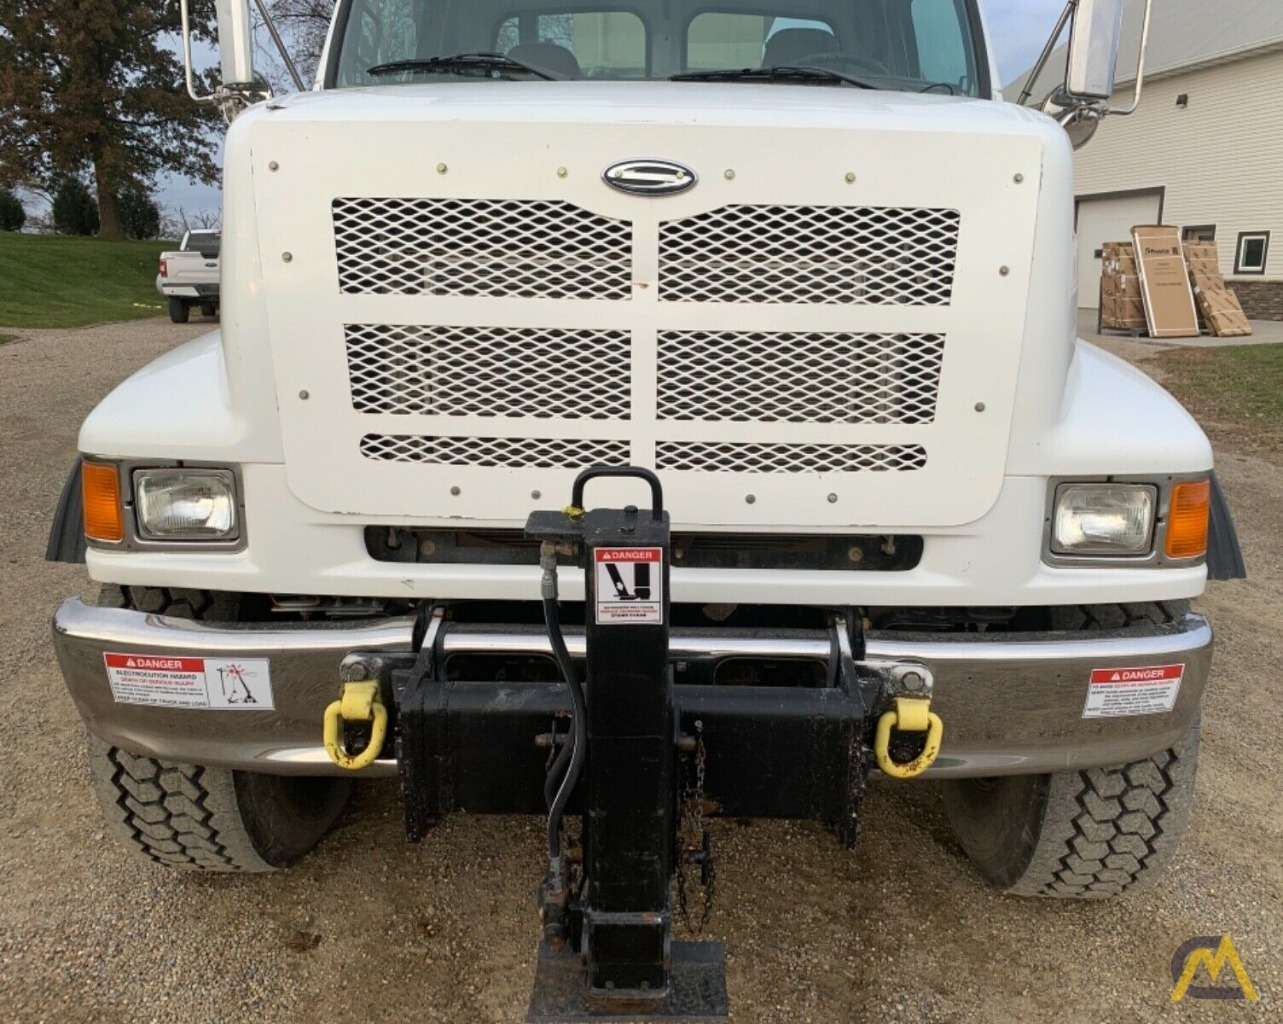 National Series Series 1400H Model 14127H 33-Ton Boom Truck Crane on Sterling L7500 6